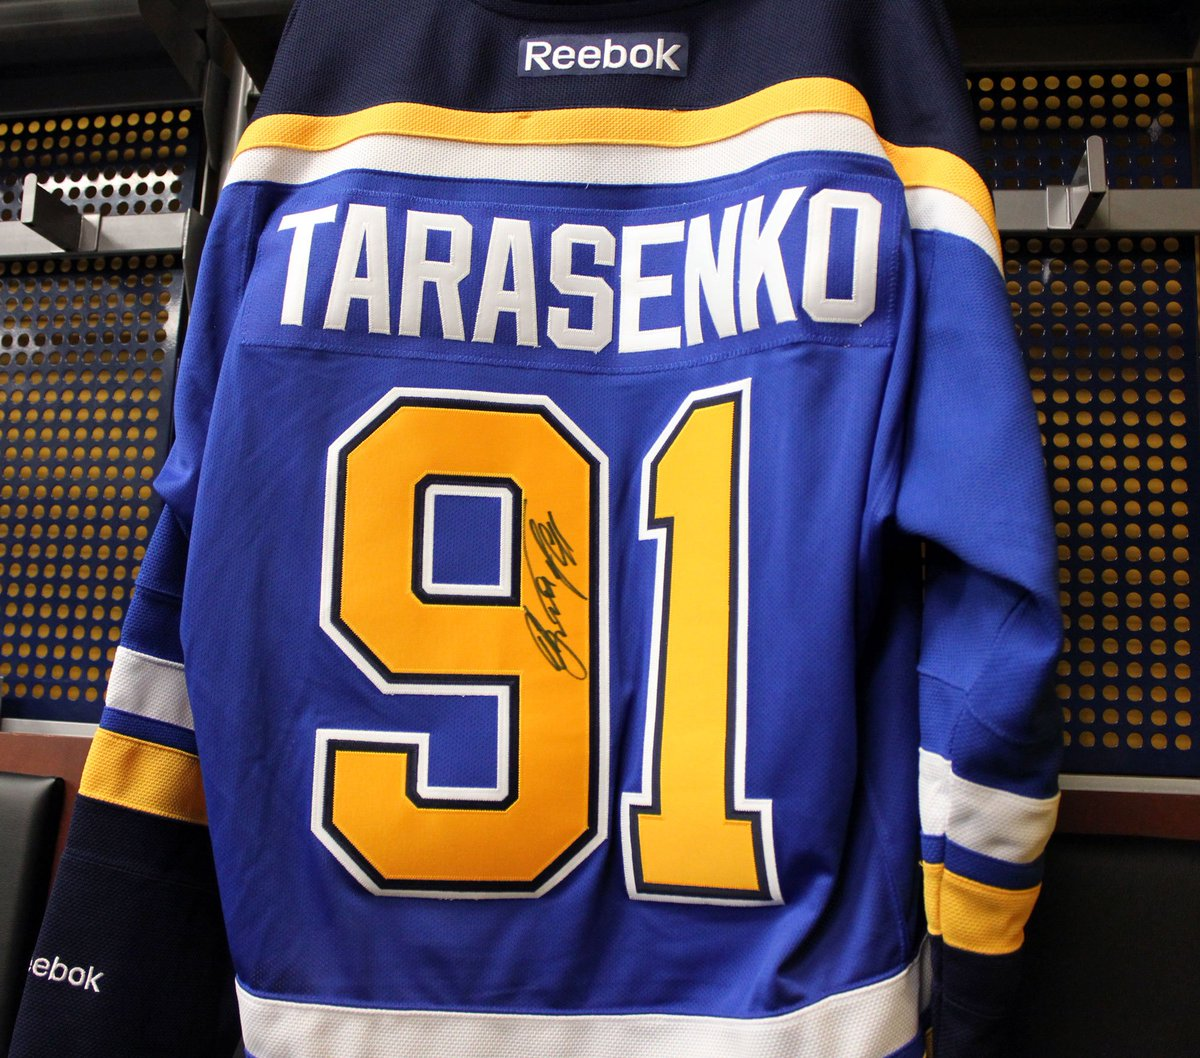 Last chance to win this signed Tarasenko jersey! RT & use #NHL17Tarasenko to enter. Winner will be announced Monday. https://t.co/lU7TJqJ9RF